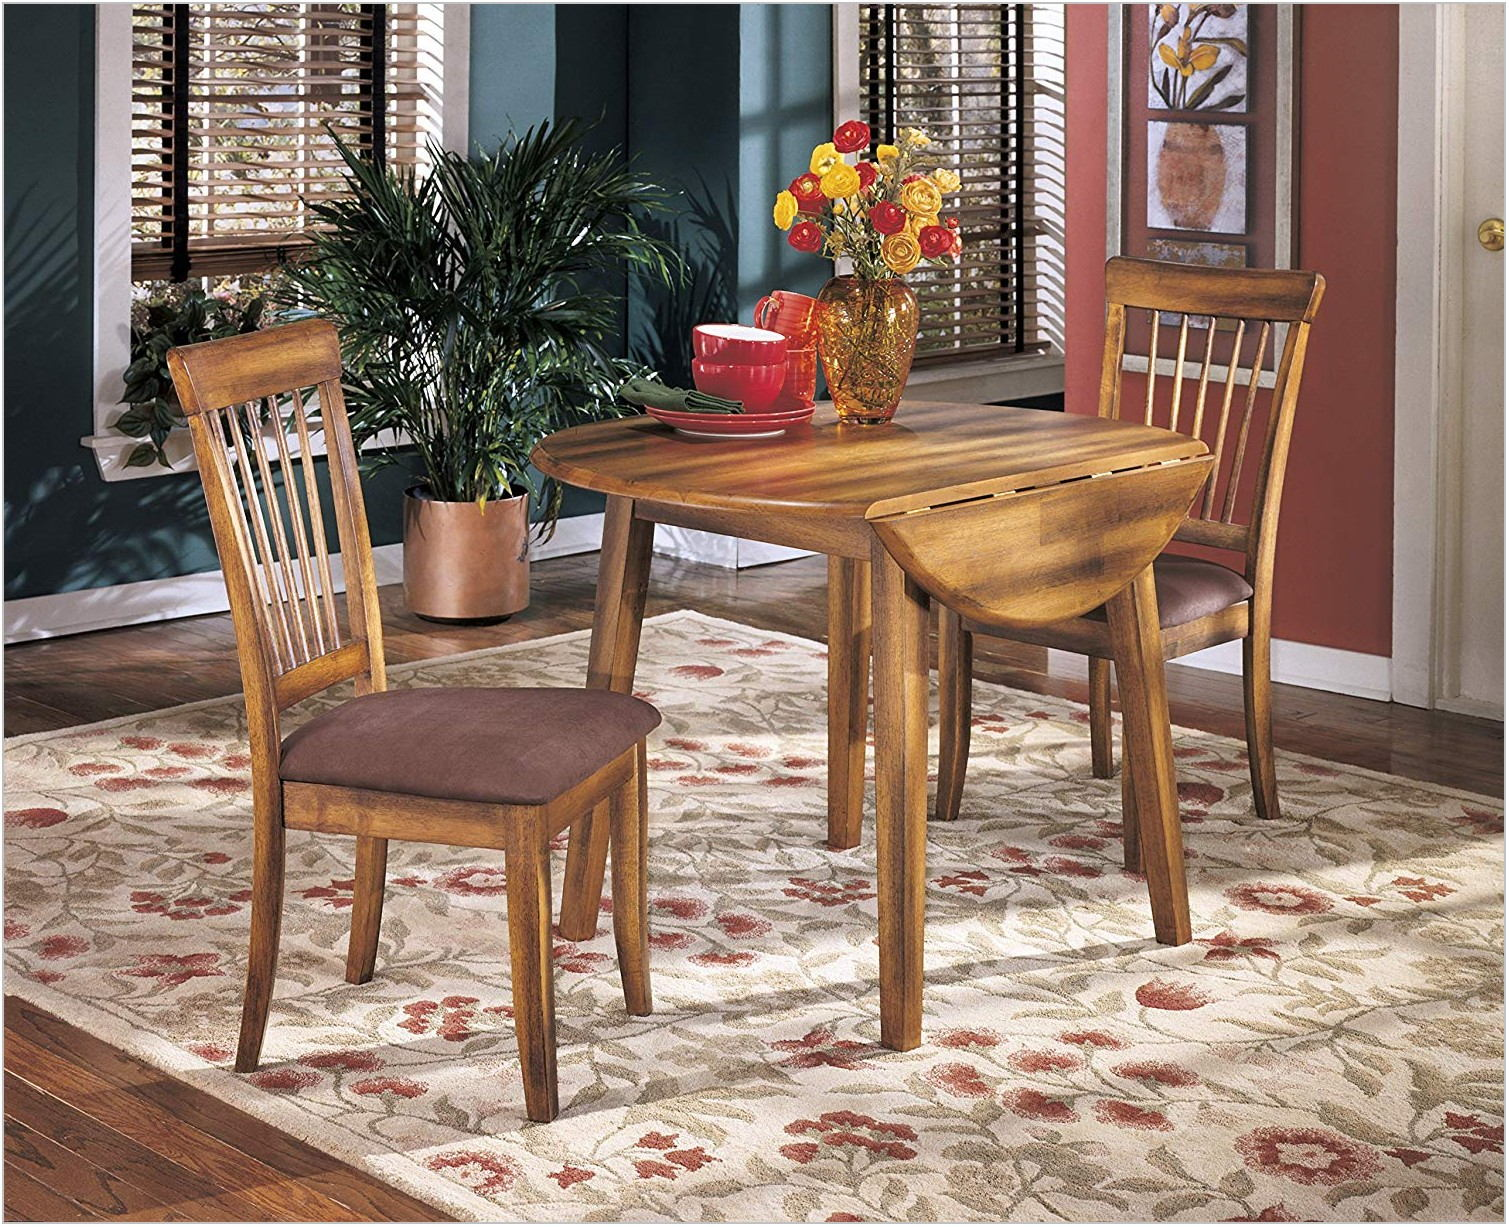 Rustic Dining Room Table With Leaf